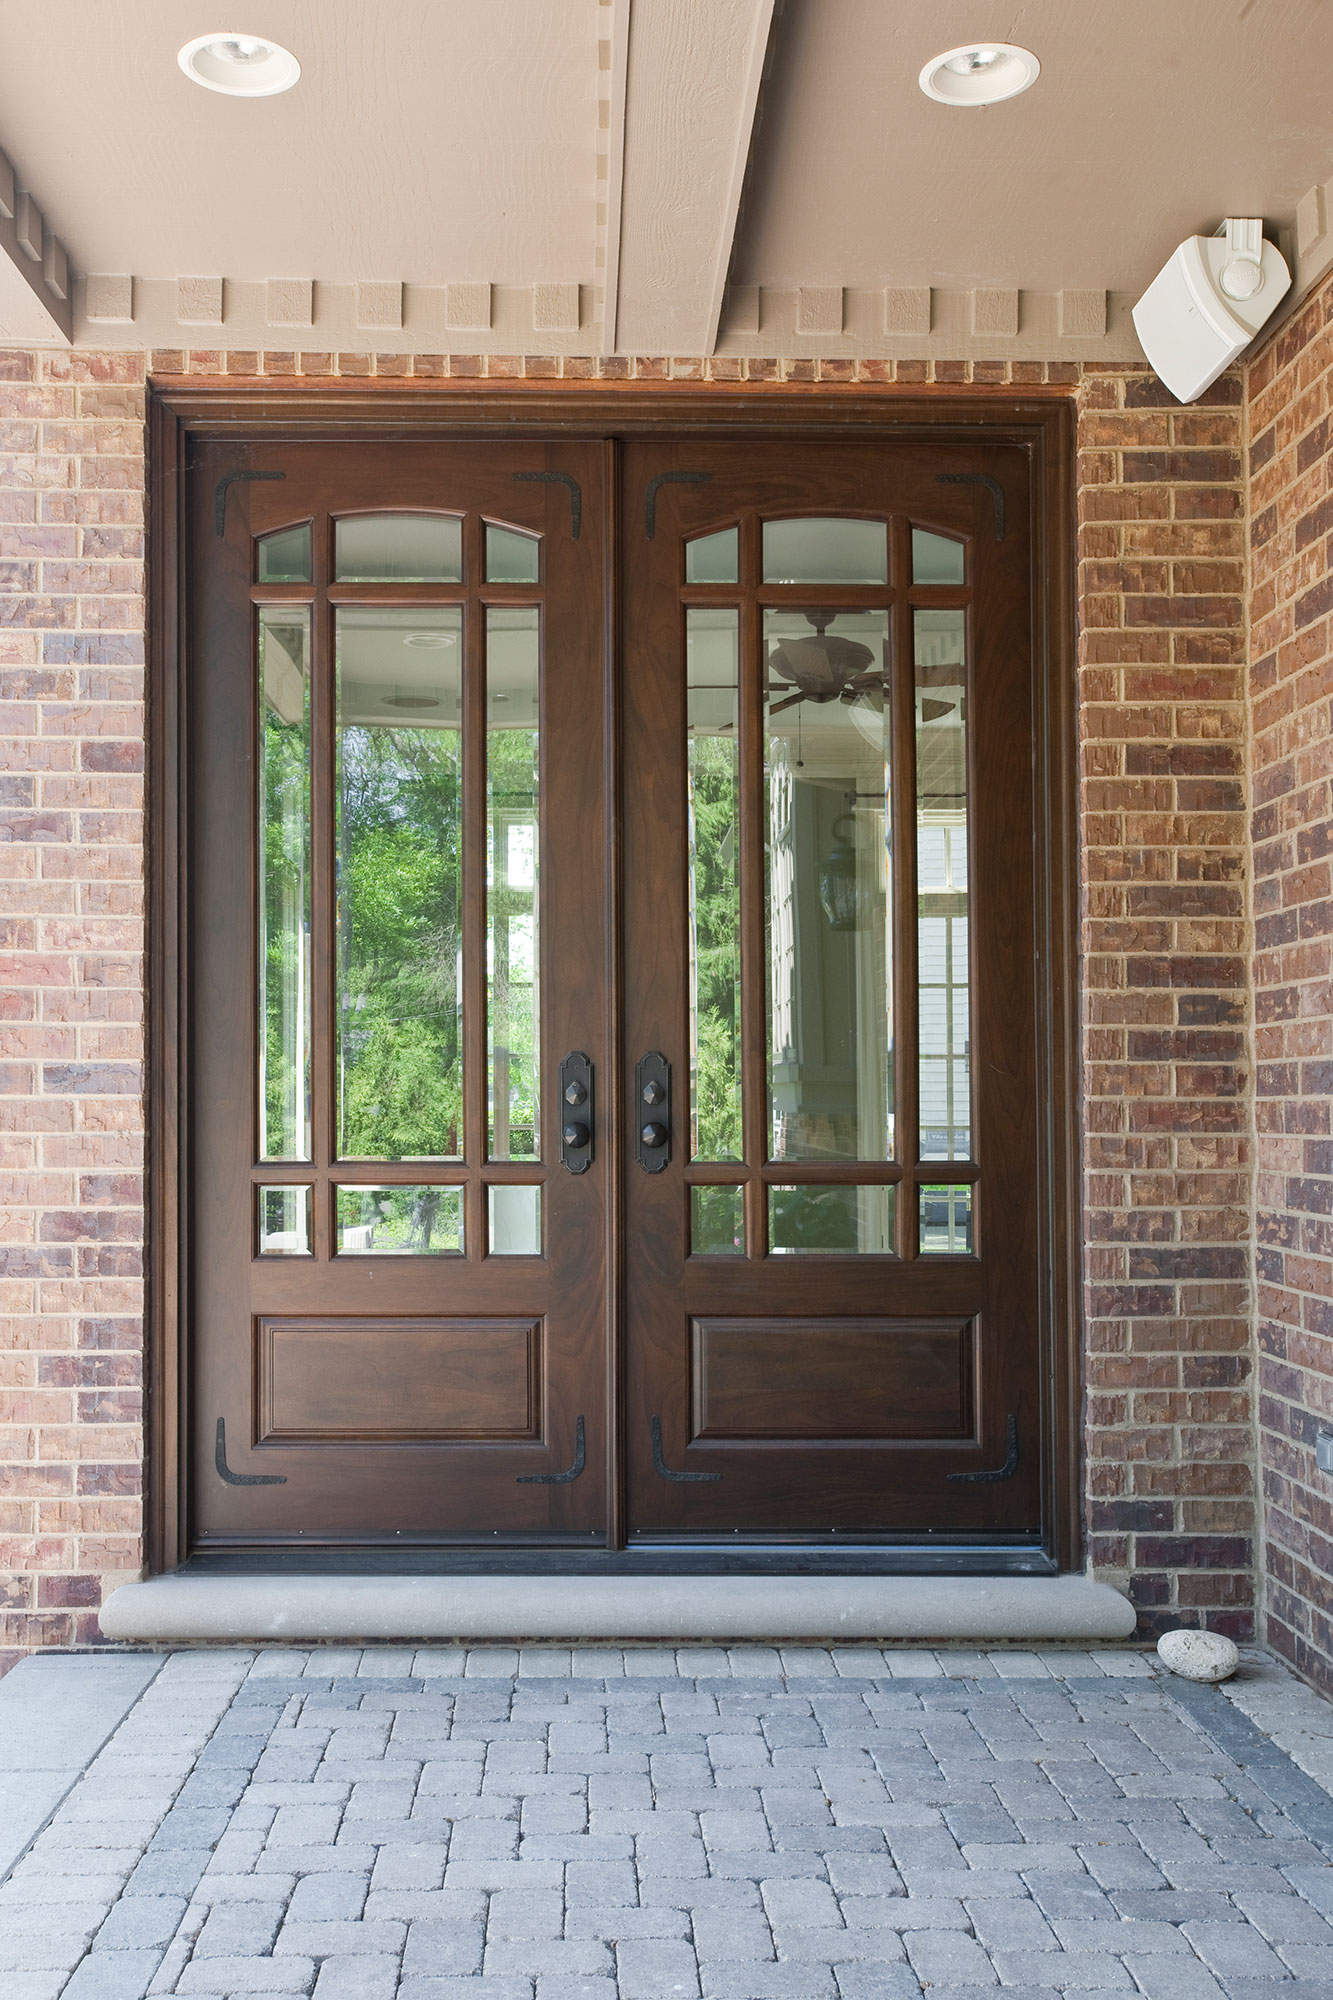 Backyard door new custom homes globex developments for Front door with large window